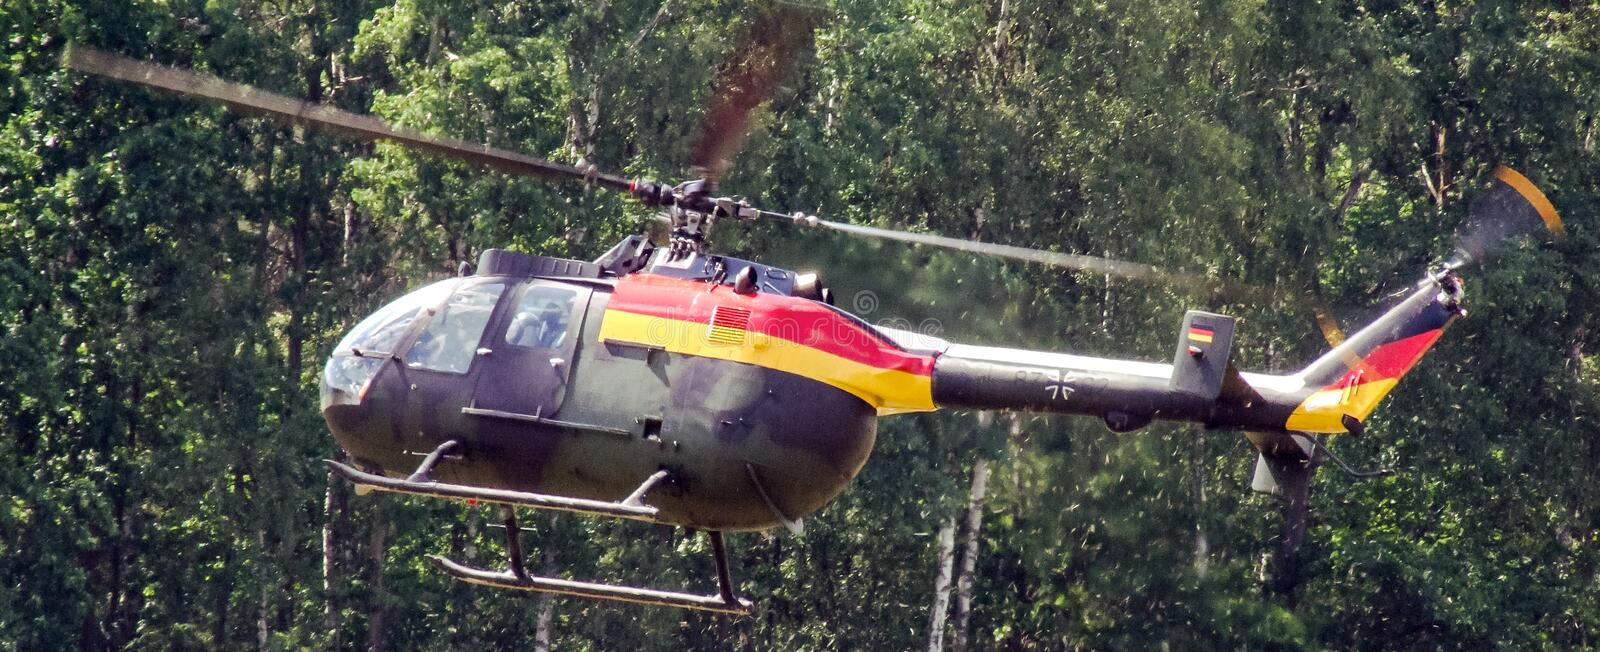 Eurocopter MBB Bo-105 of German Air Force display in Goraszka in Poland. stock photography